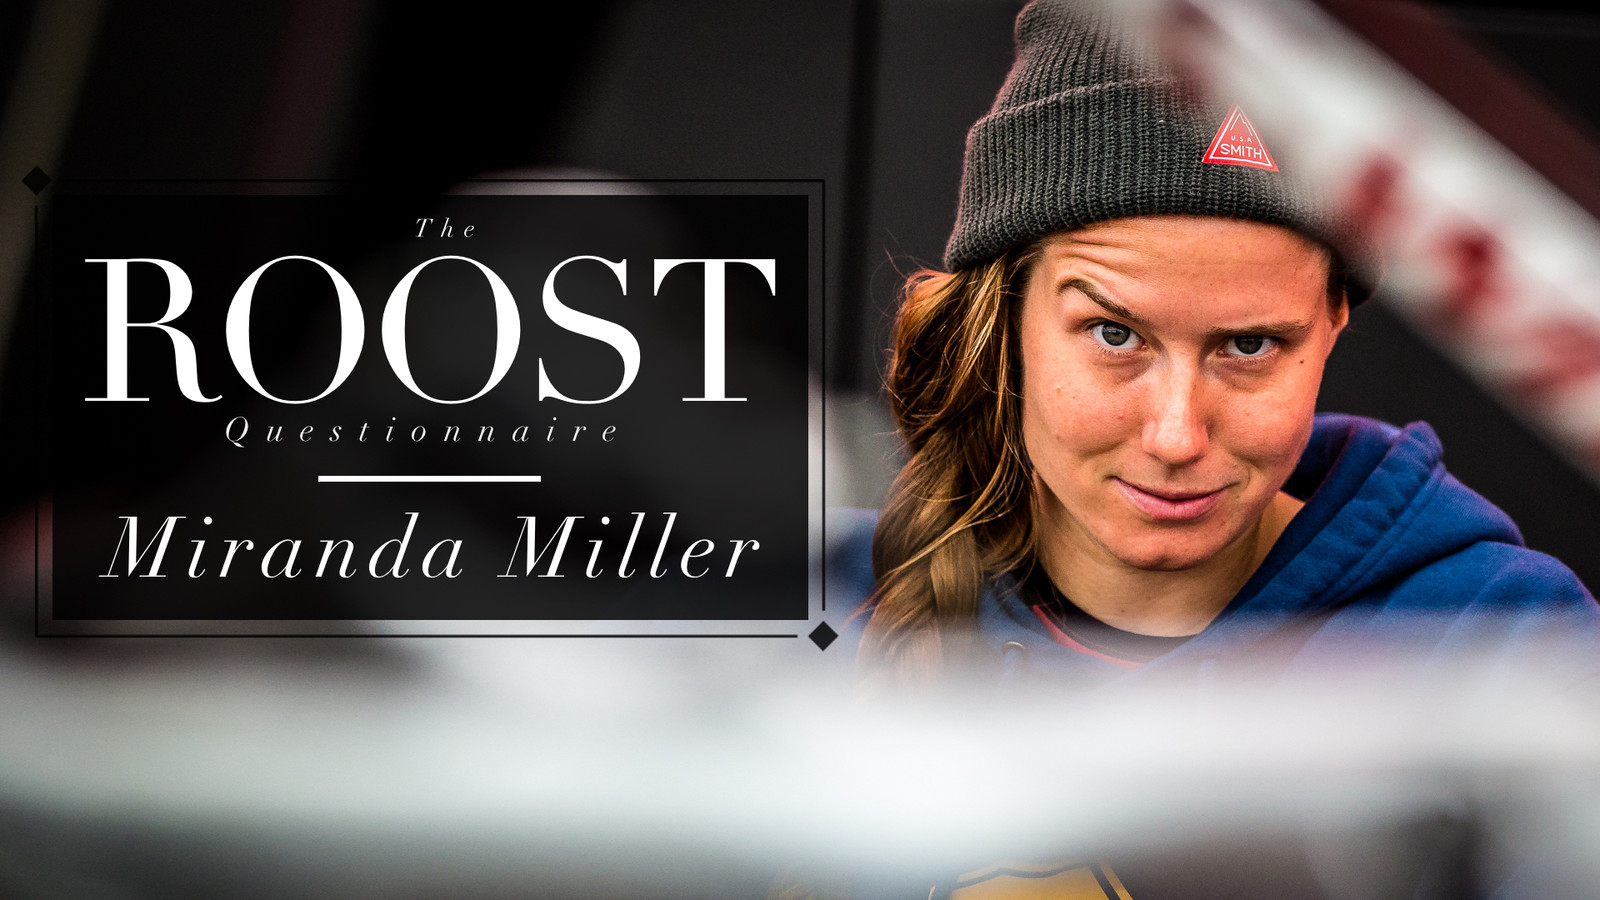 The ROOST Questionnaire #4, Miranda Miller